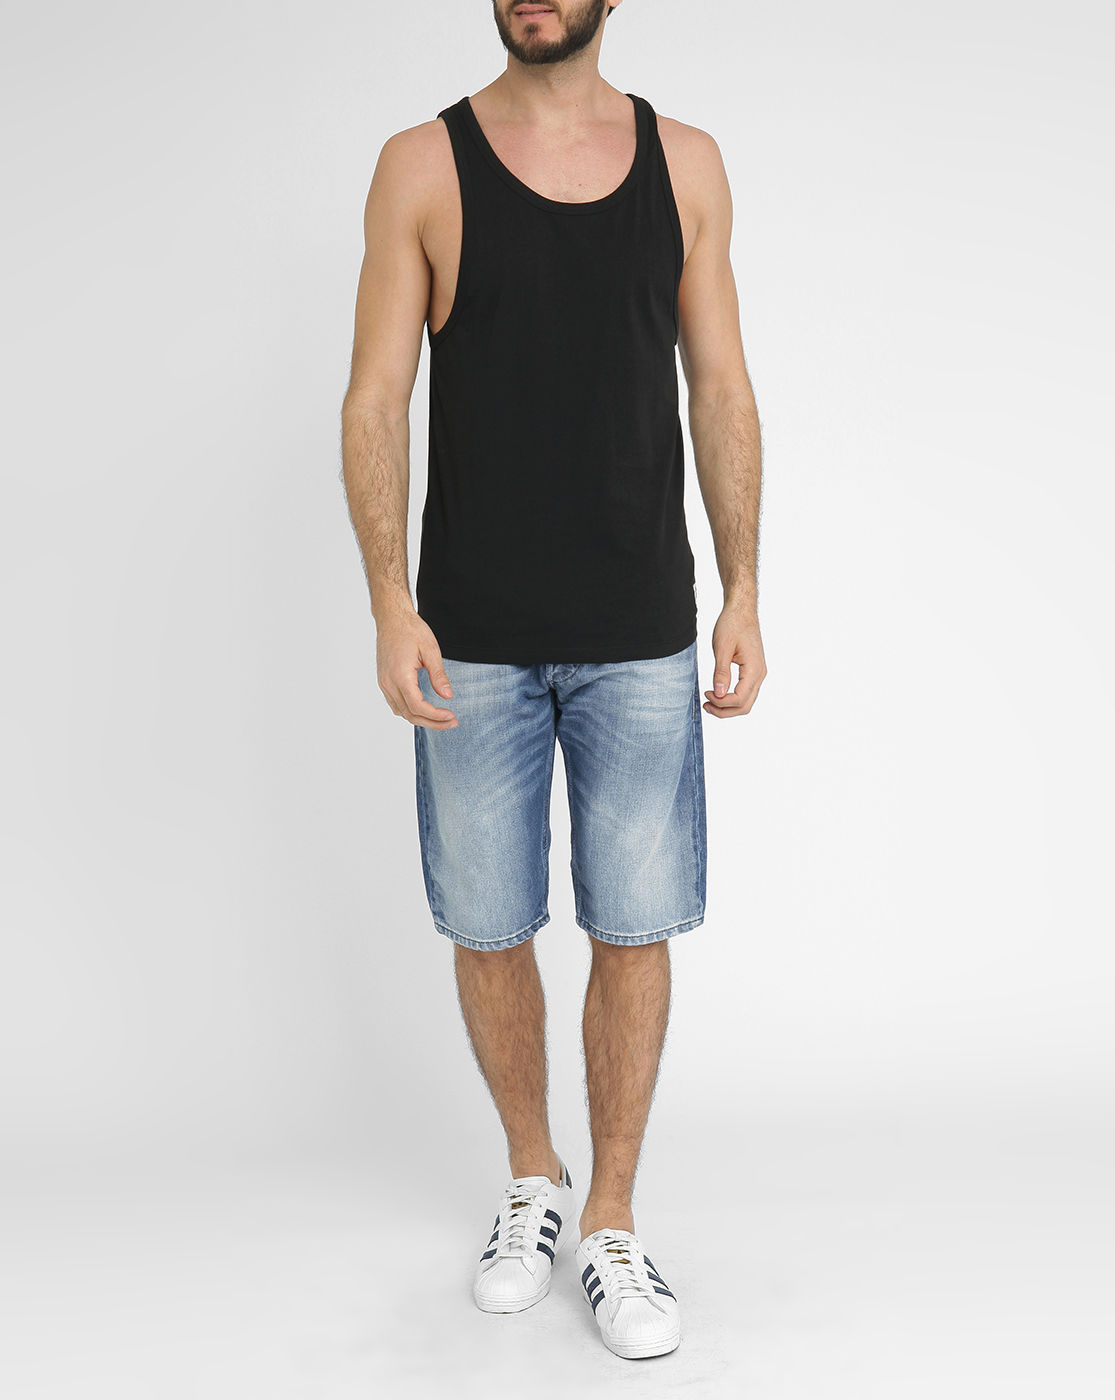 jack jones black jjortimesquare tank top for men lyst. Black Bedroom Furniture Sets. Home Design Ideas